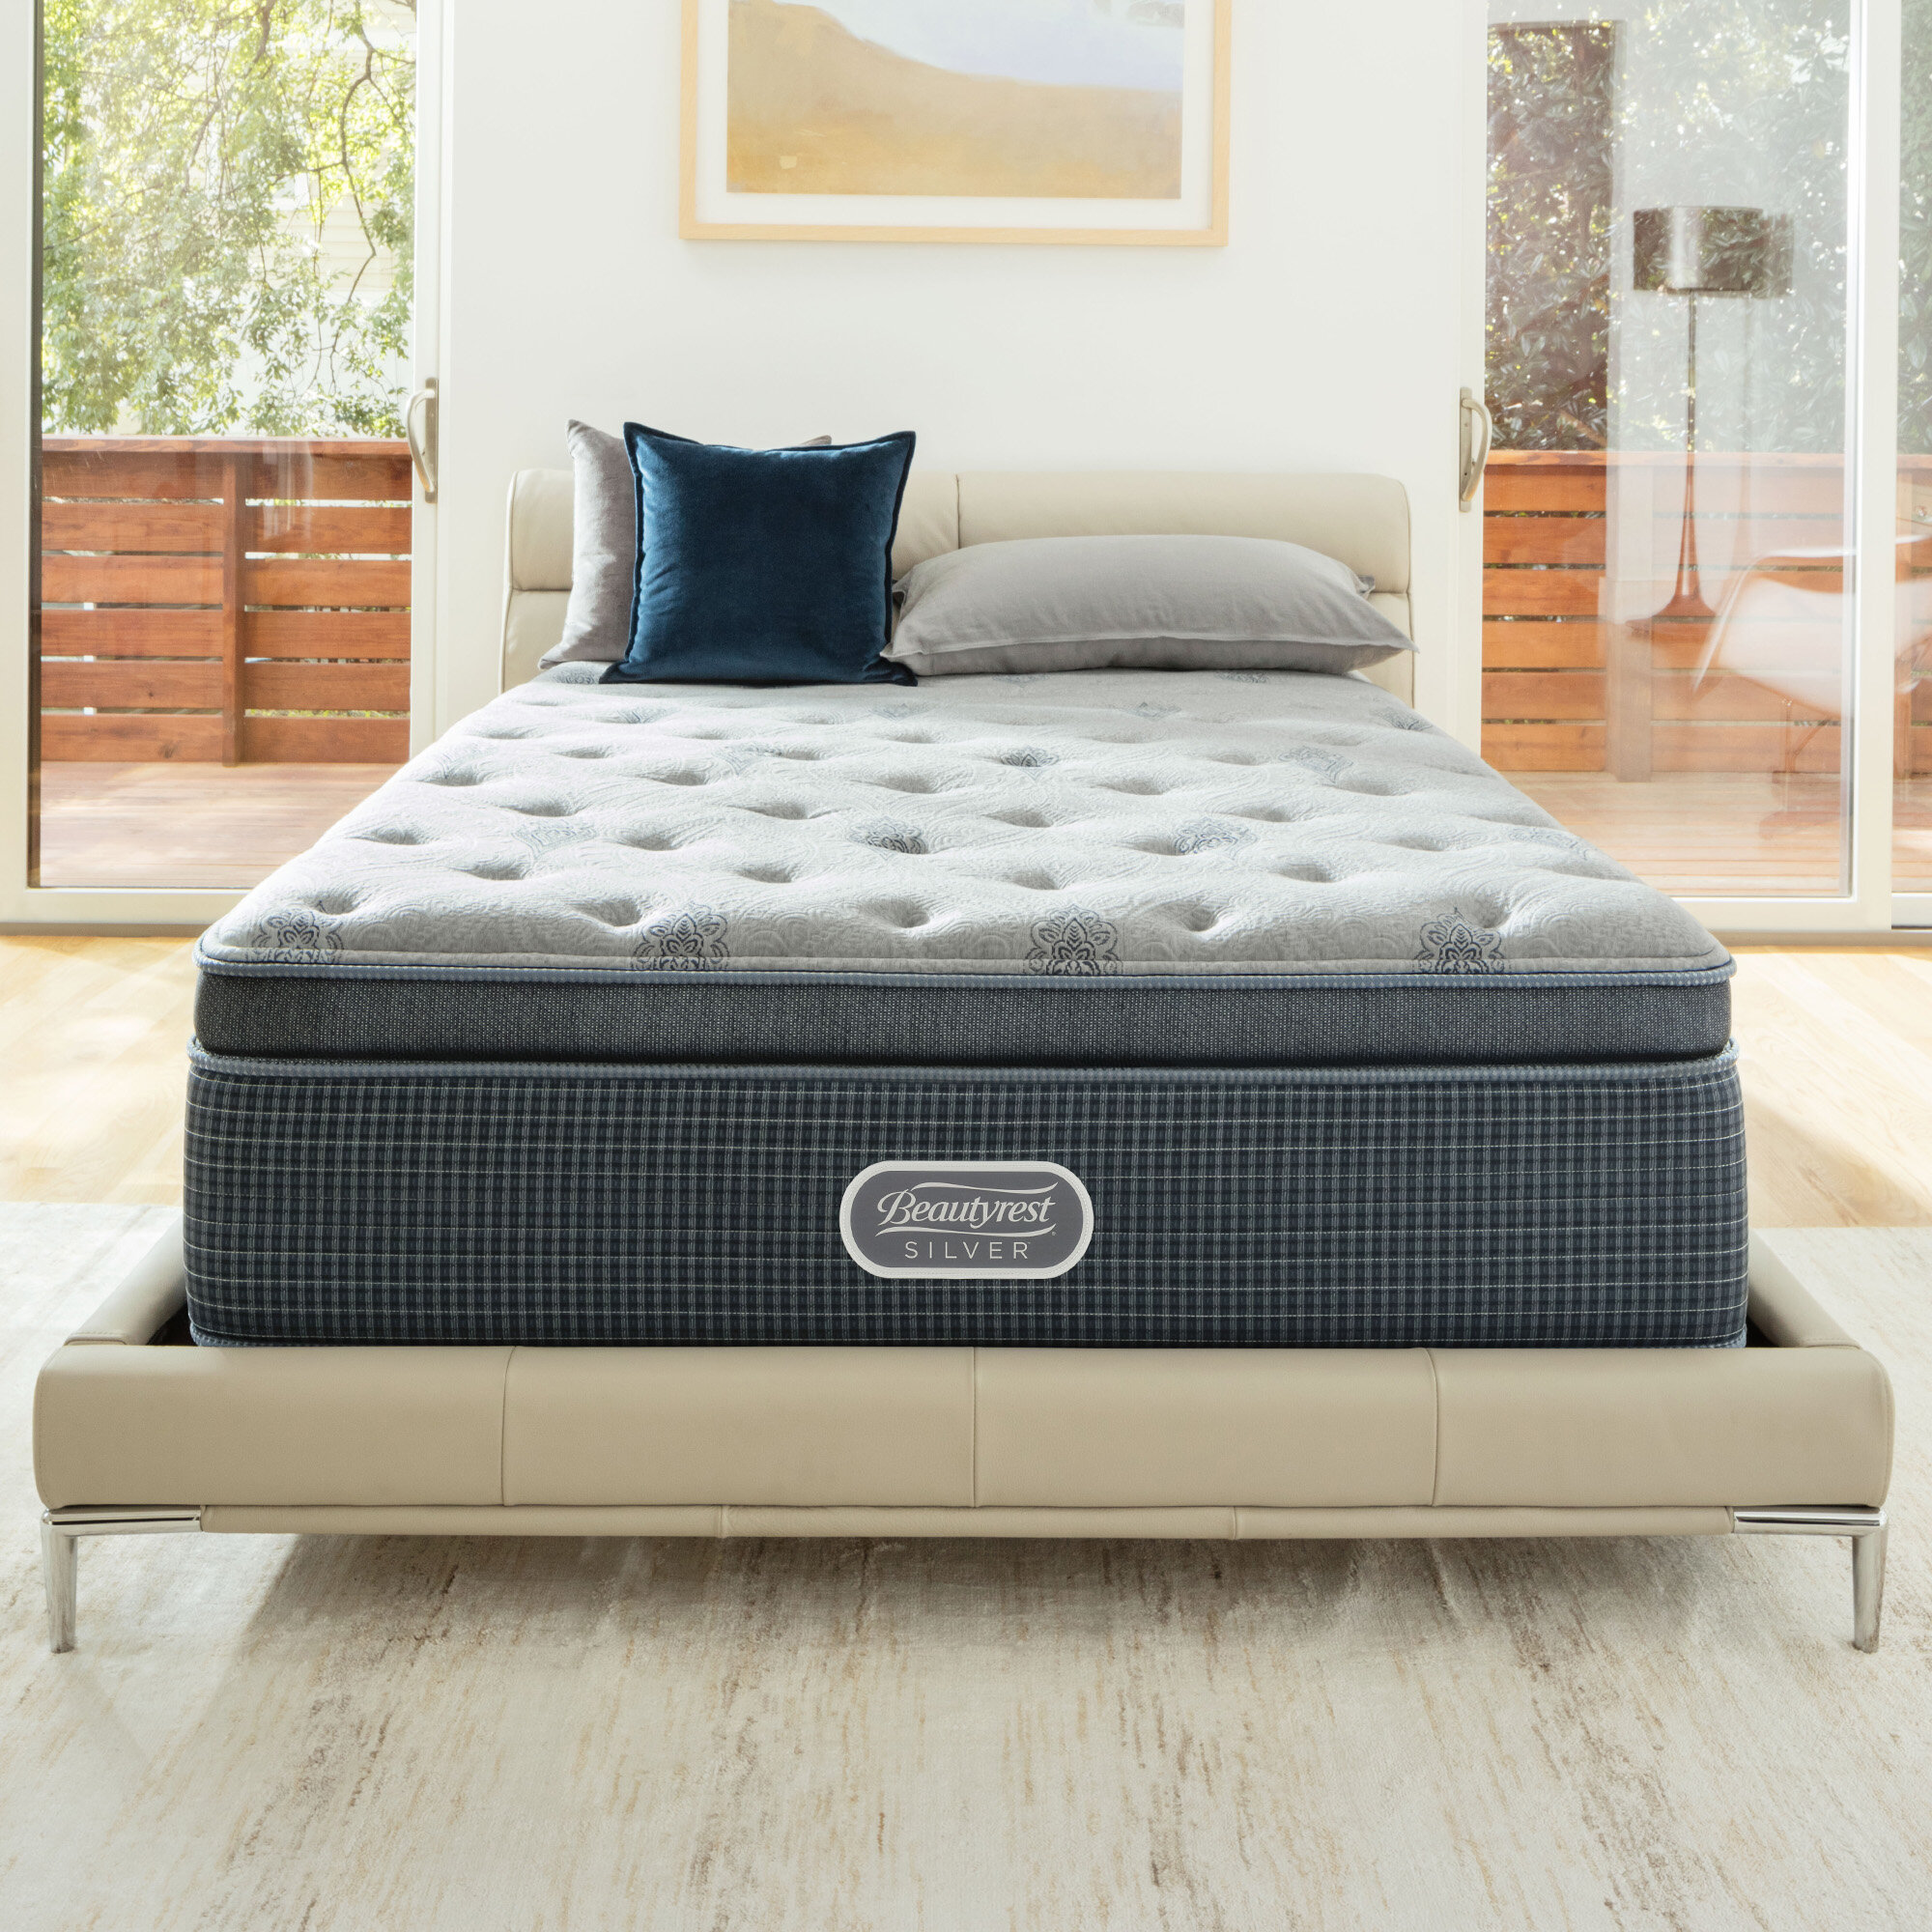 top htm extravagant set day next topper mattresses img sticker delivery mattress select naturals pillow divan c firmness